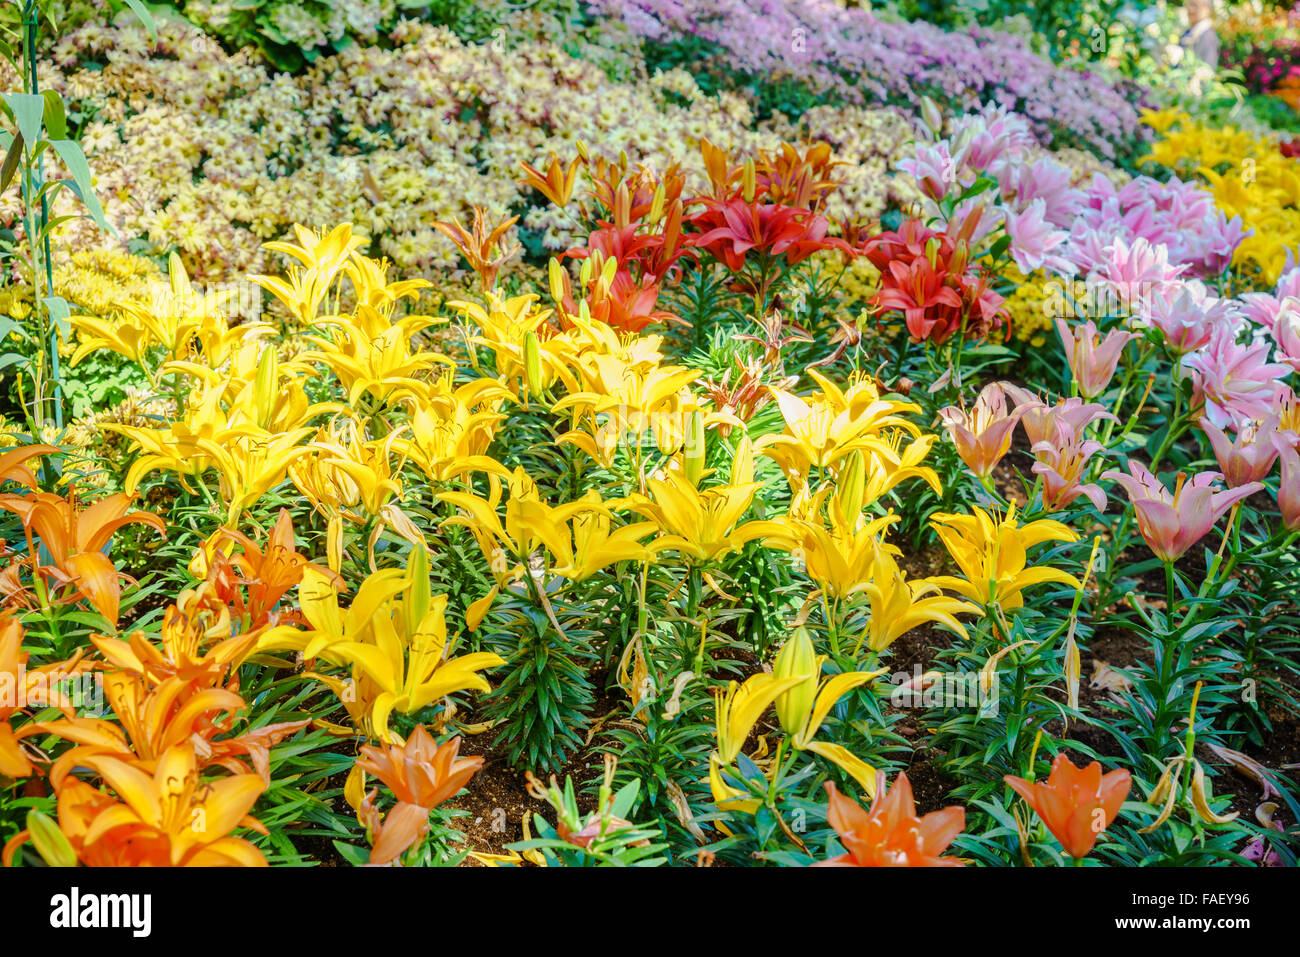 Kinds Of Flowers Stock Photos Kinds Of Flowers Stock Images Alamy